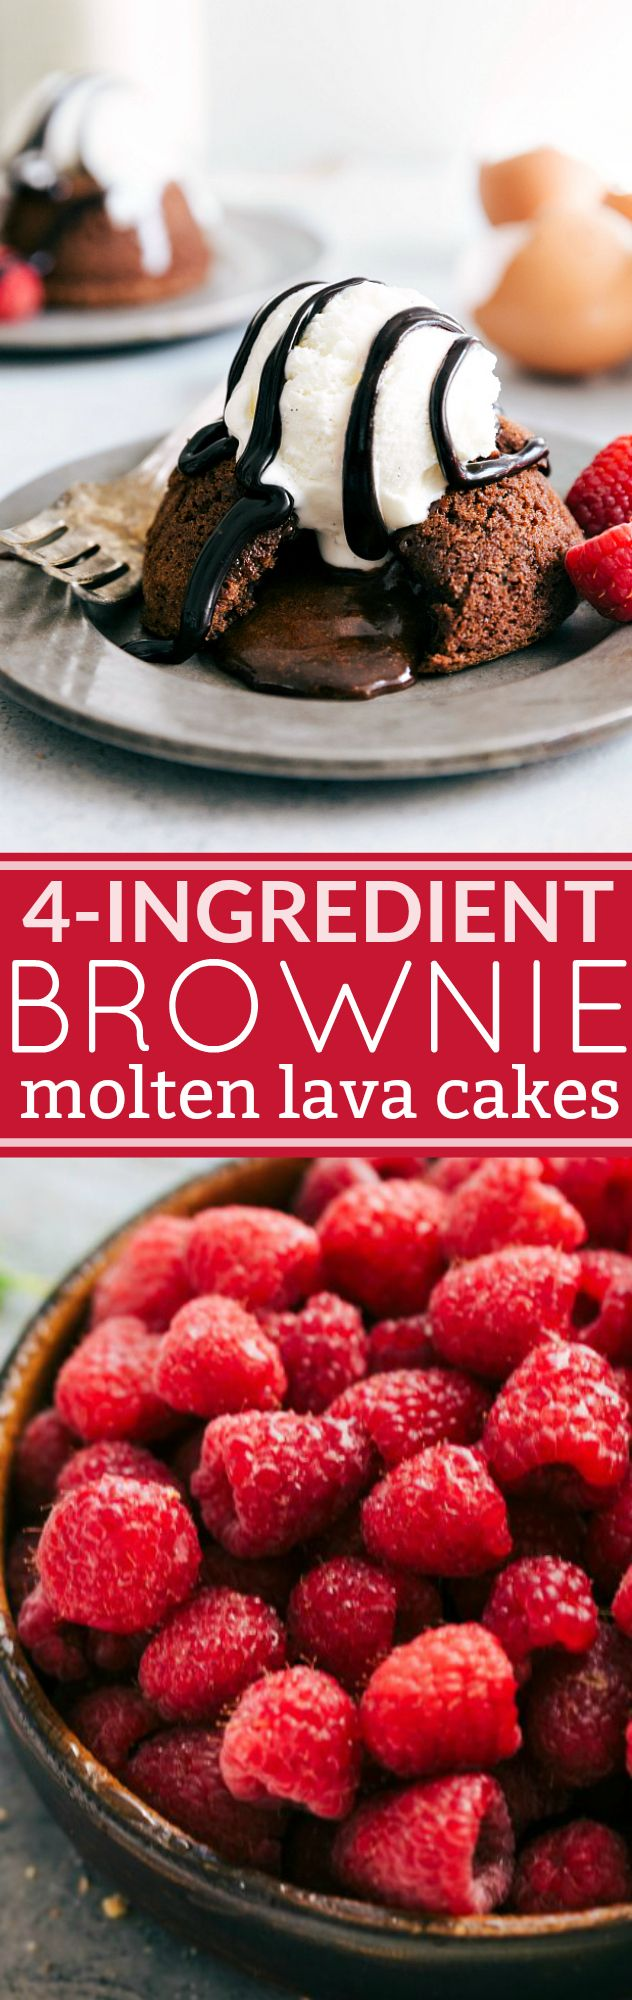 1713 Best Cake Cookie Pudding Chocolate Icecream Bread Kue Brownis By Nature Cakes Bali 4 Ingredient Brownie Molten Lava Gooey Miniature Made In A